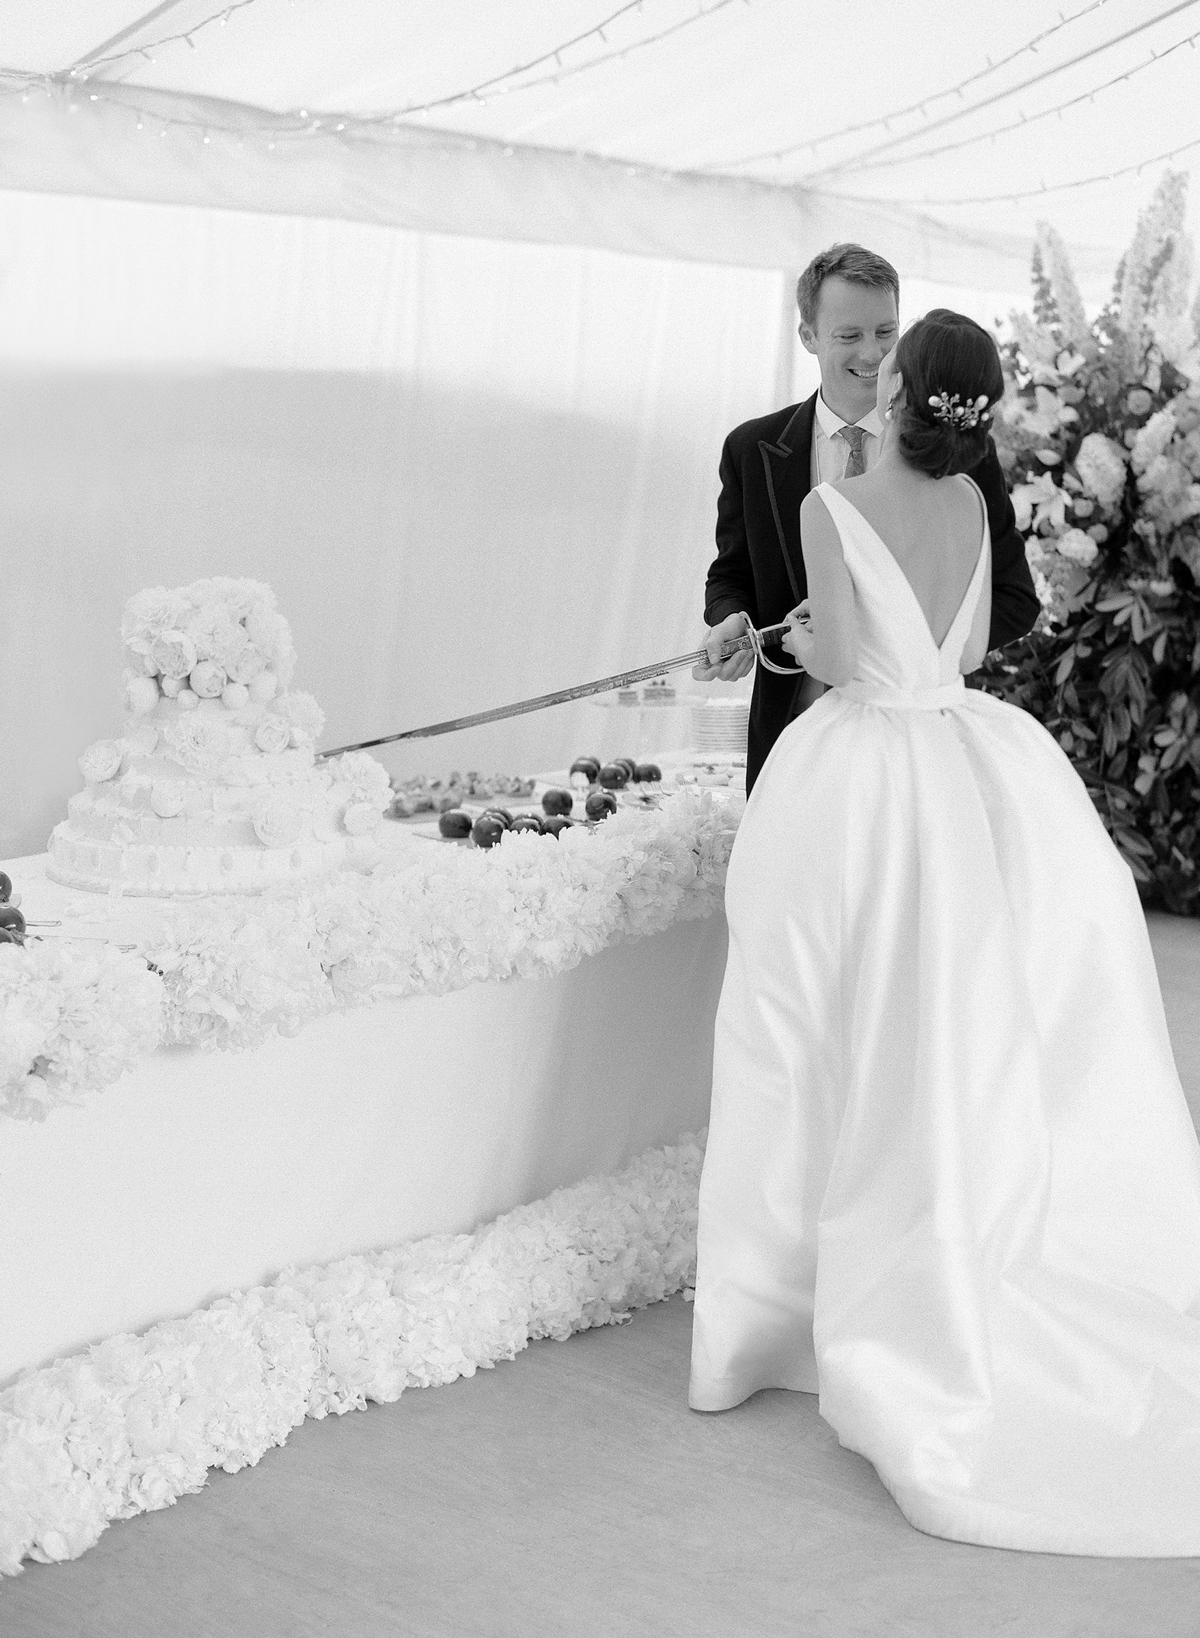 peony matthew england wedding couple cutting cake with sword